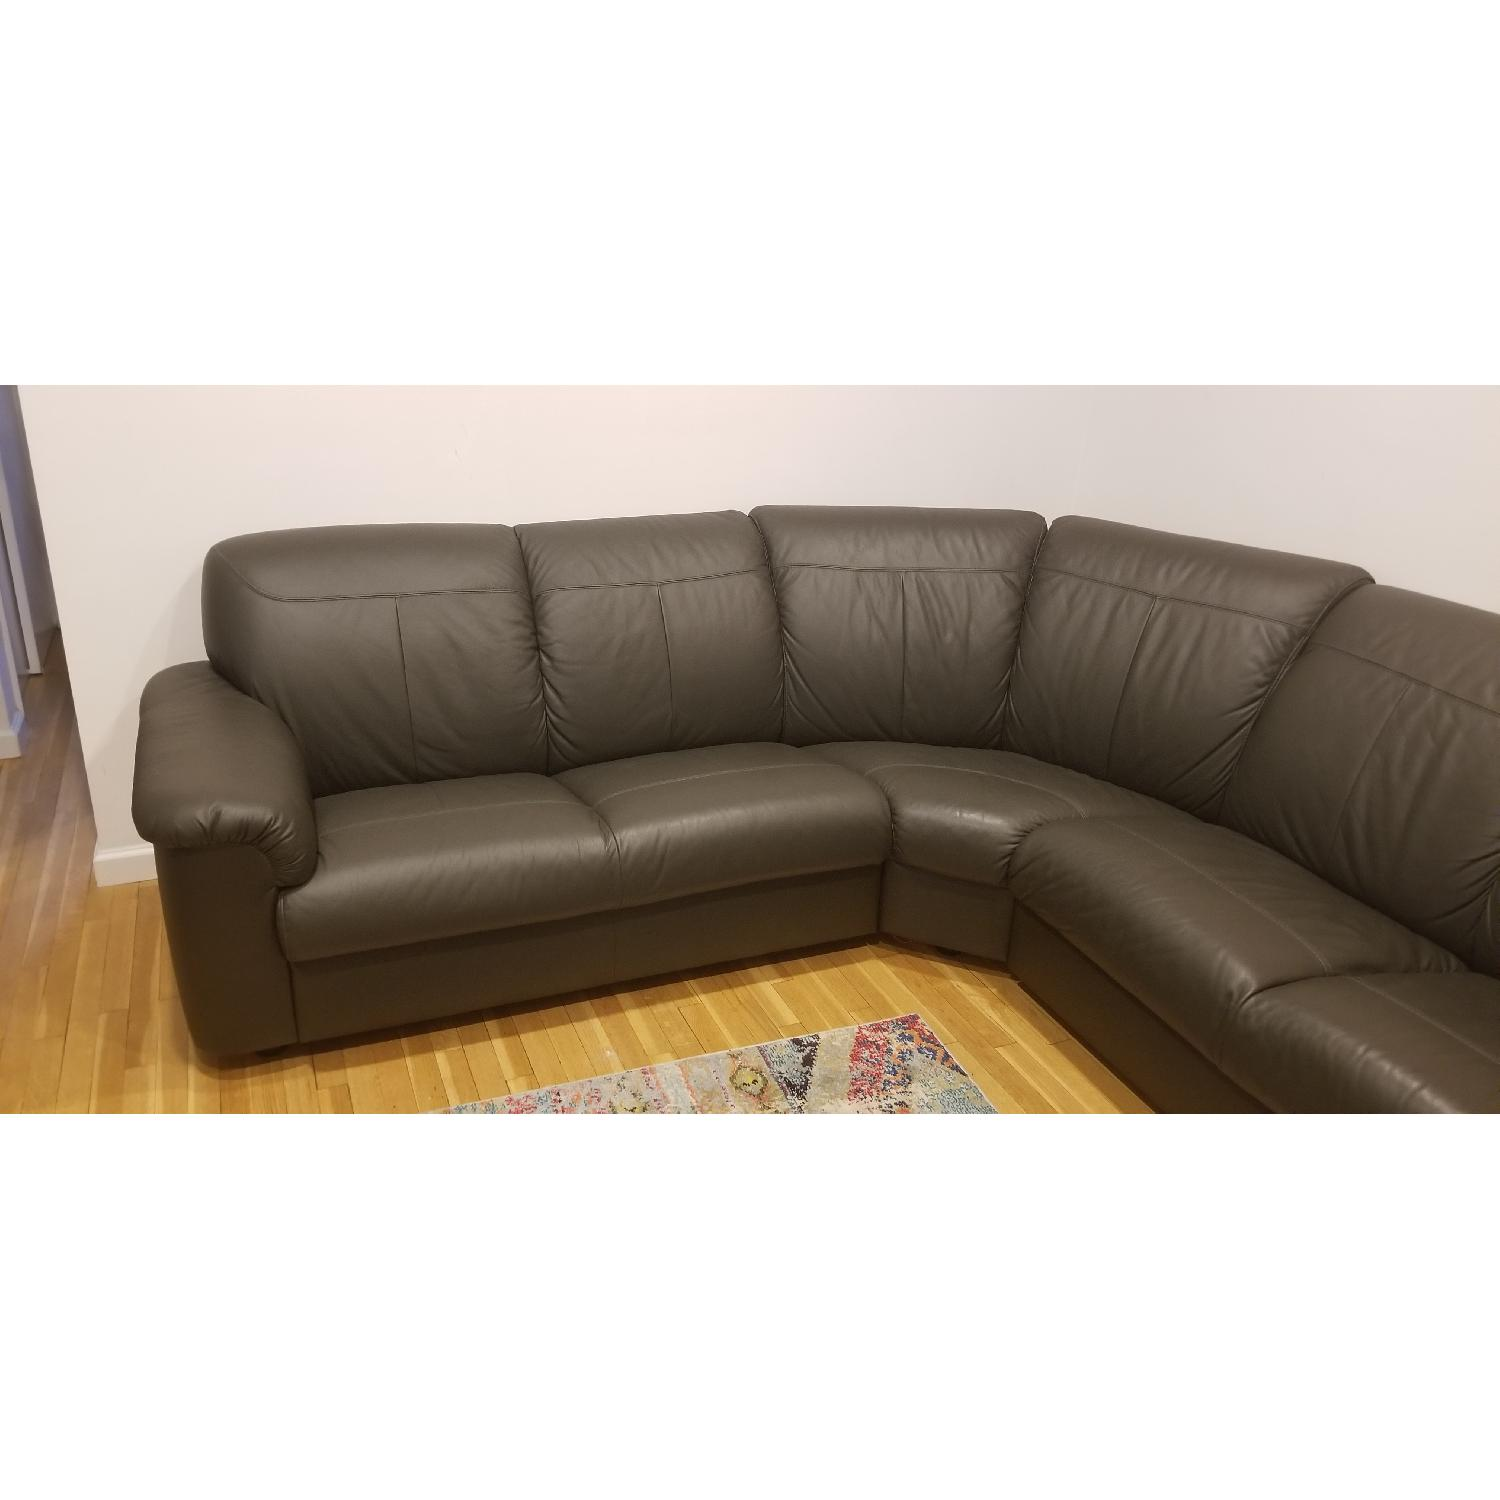 Ikea Timsfors Faux Leather Sectional Sofa - image-4